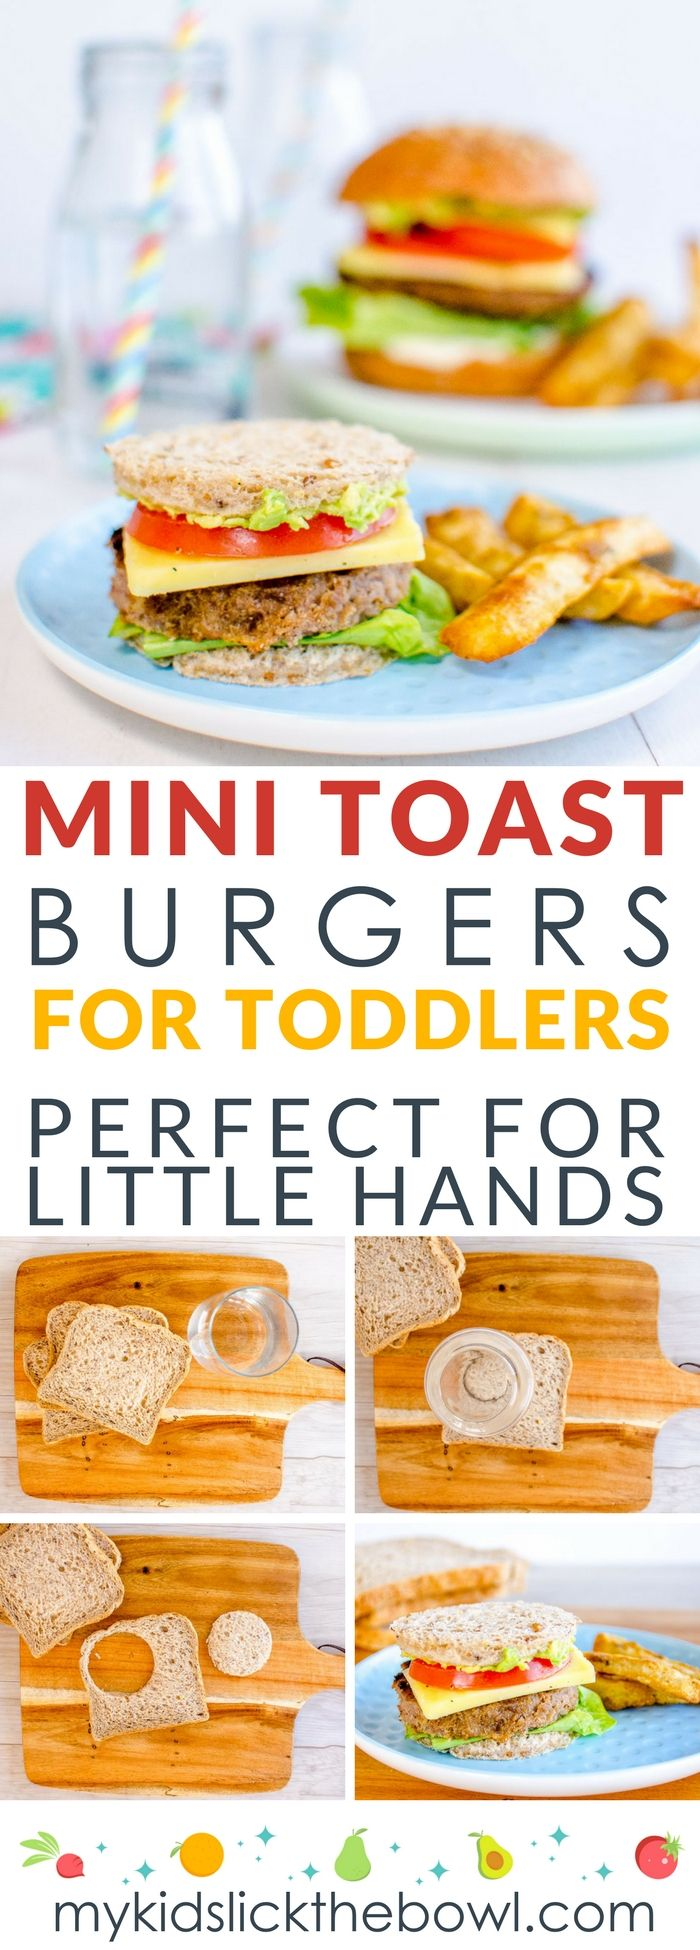 Mini toast burgers for toddlers a kid friendly dinner perfect for picky eaters and baby led weaning, plus 8 great kid approved fillings #kidfriendlydinners #pickyeaters #burgers #babyledweaning